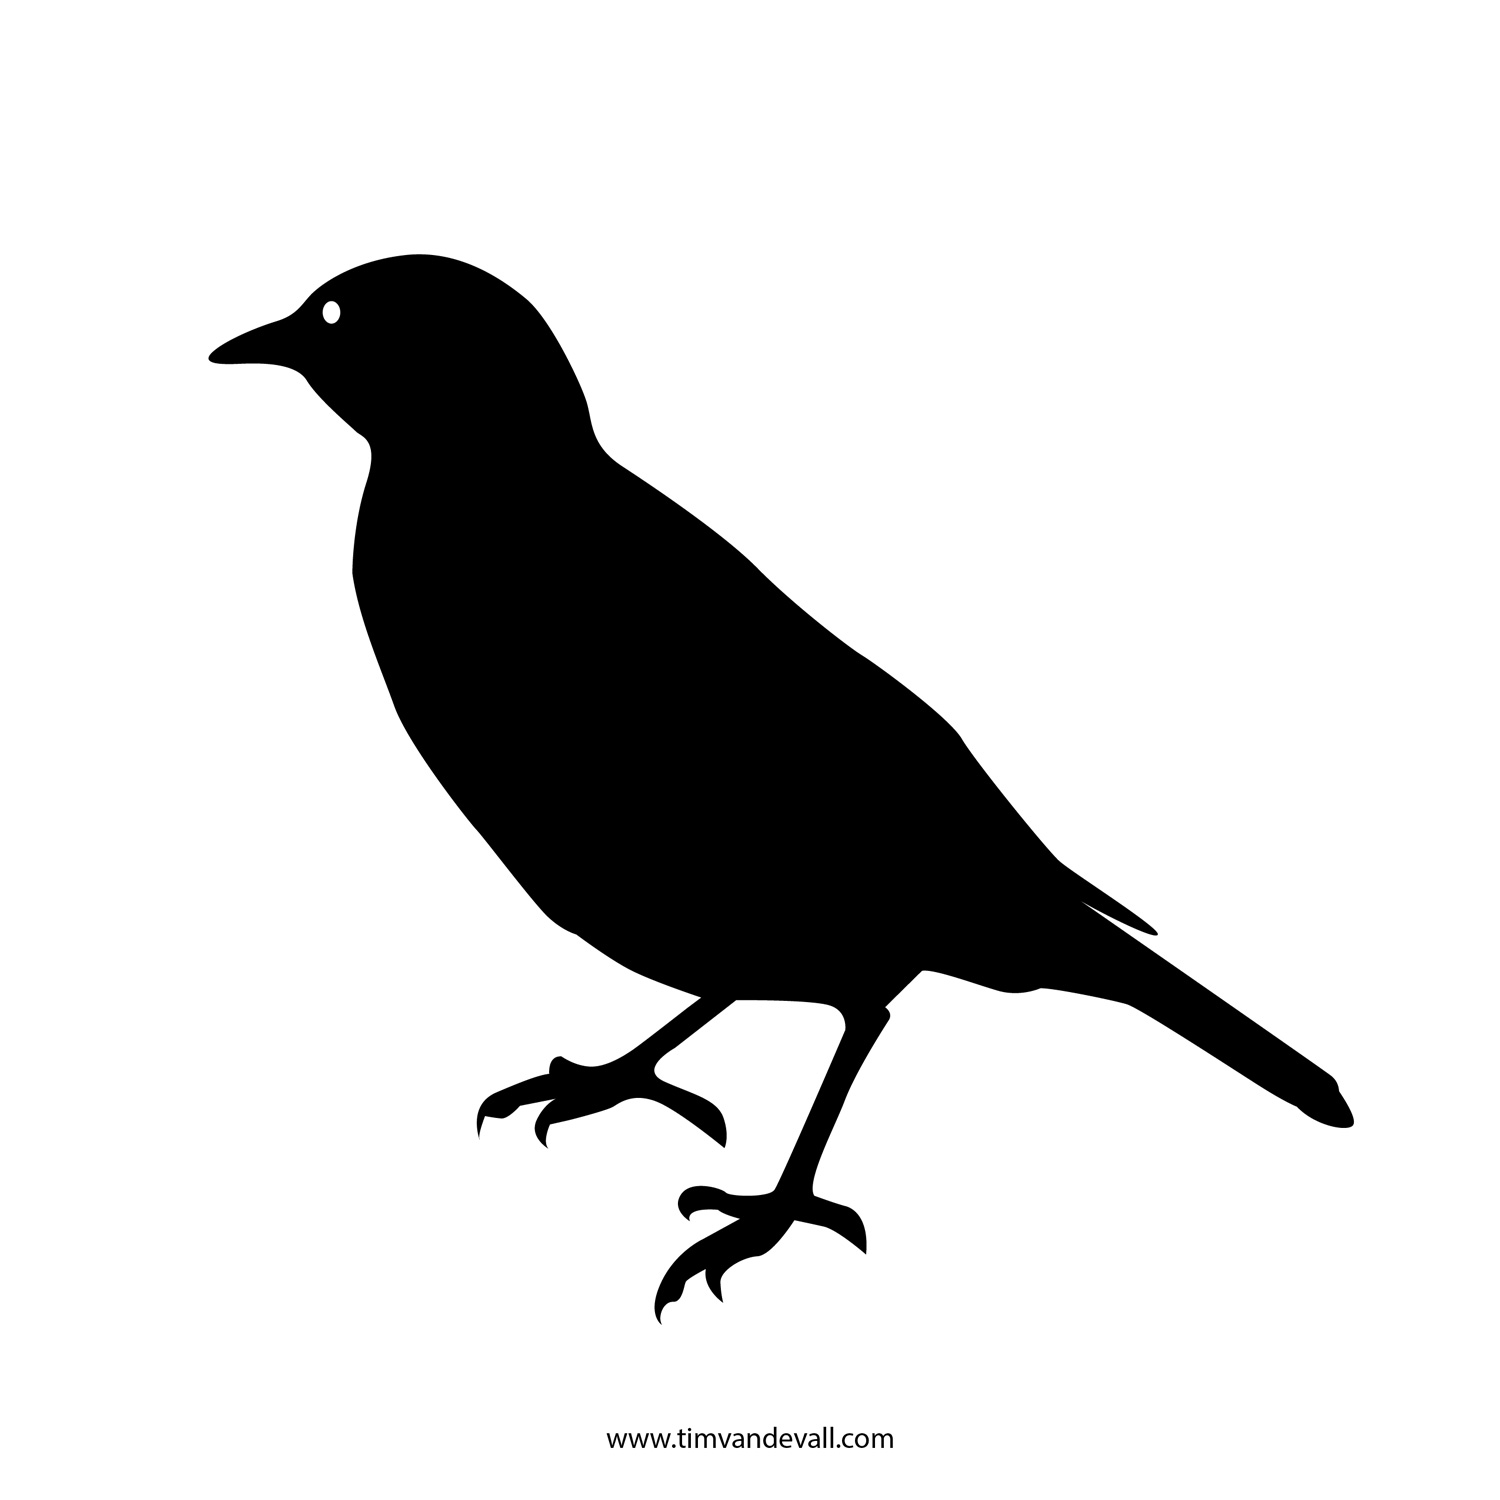 printable pictures of birds 9 printable bird templates free sample example format birds pictures printable of